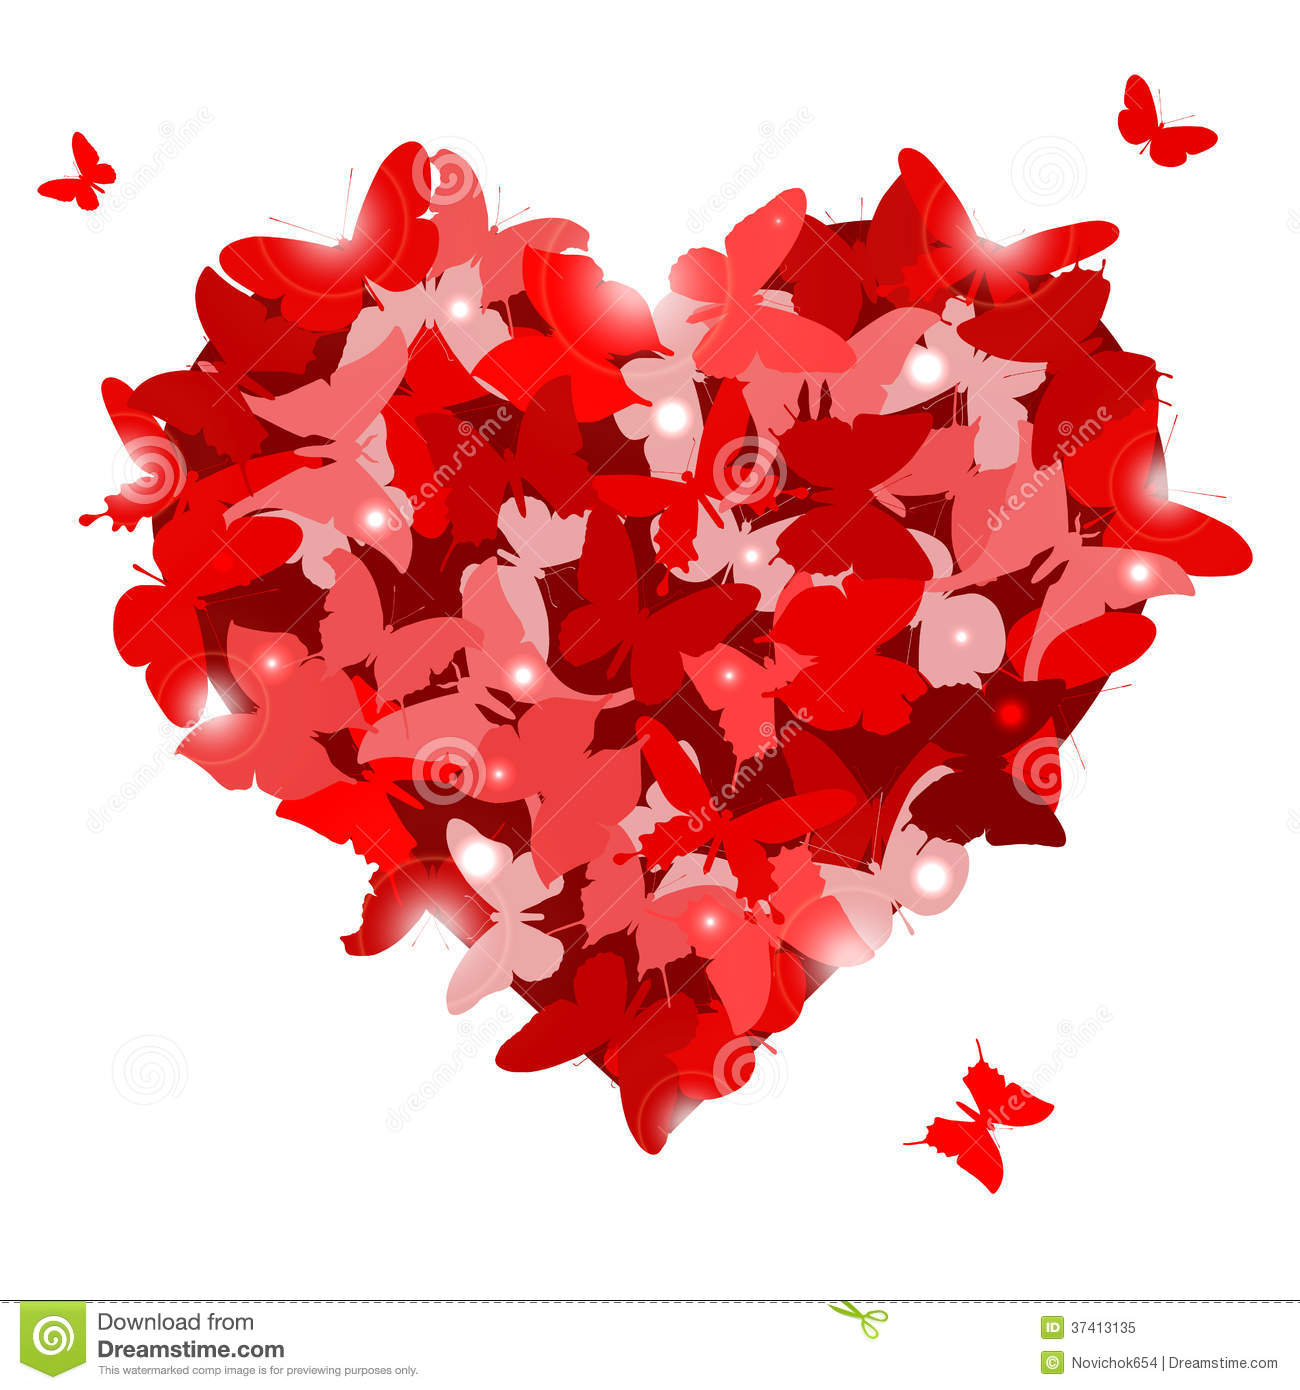 Red Heart With Butterflies For Valentineu0027s Day. Love Concept. Royalty Free  Stock Photo